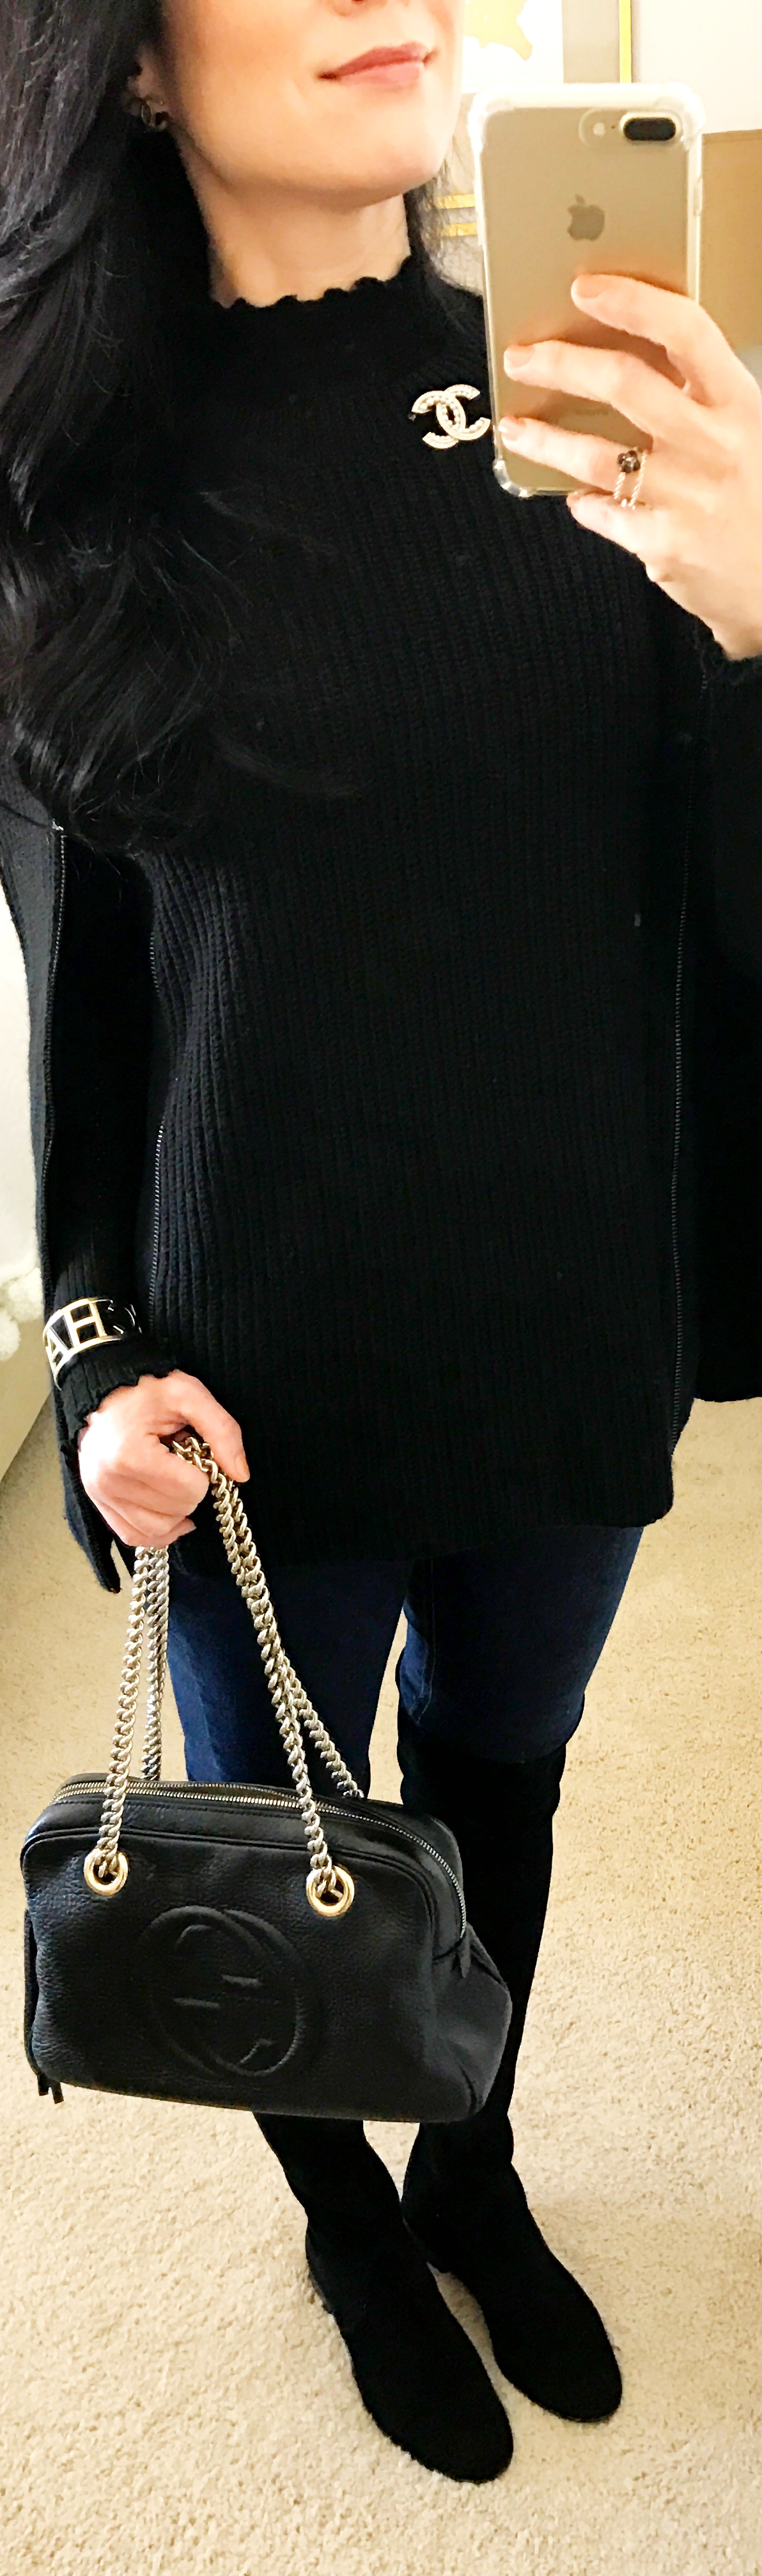 December 18th BCBG Sweater Cape with Stuart Weitzman Tall Boots and CHANEL broach